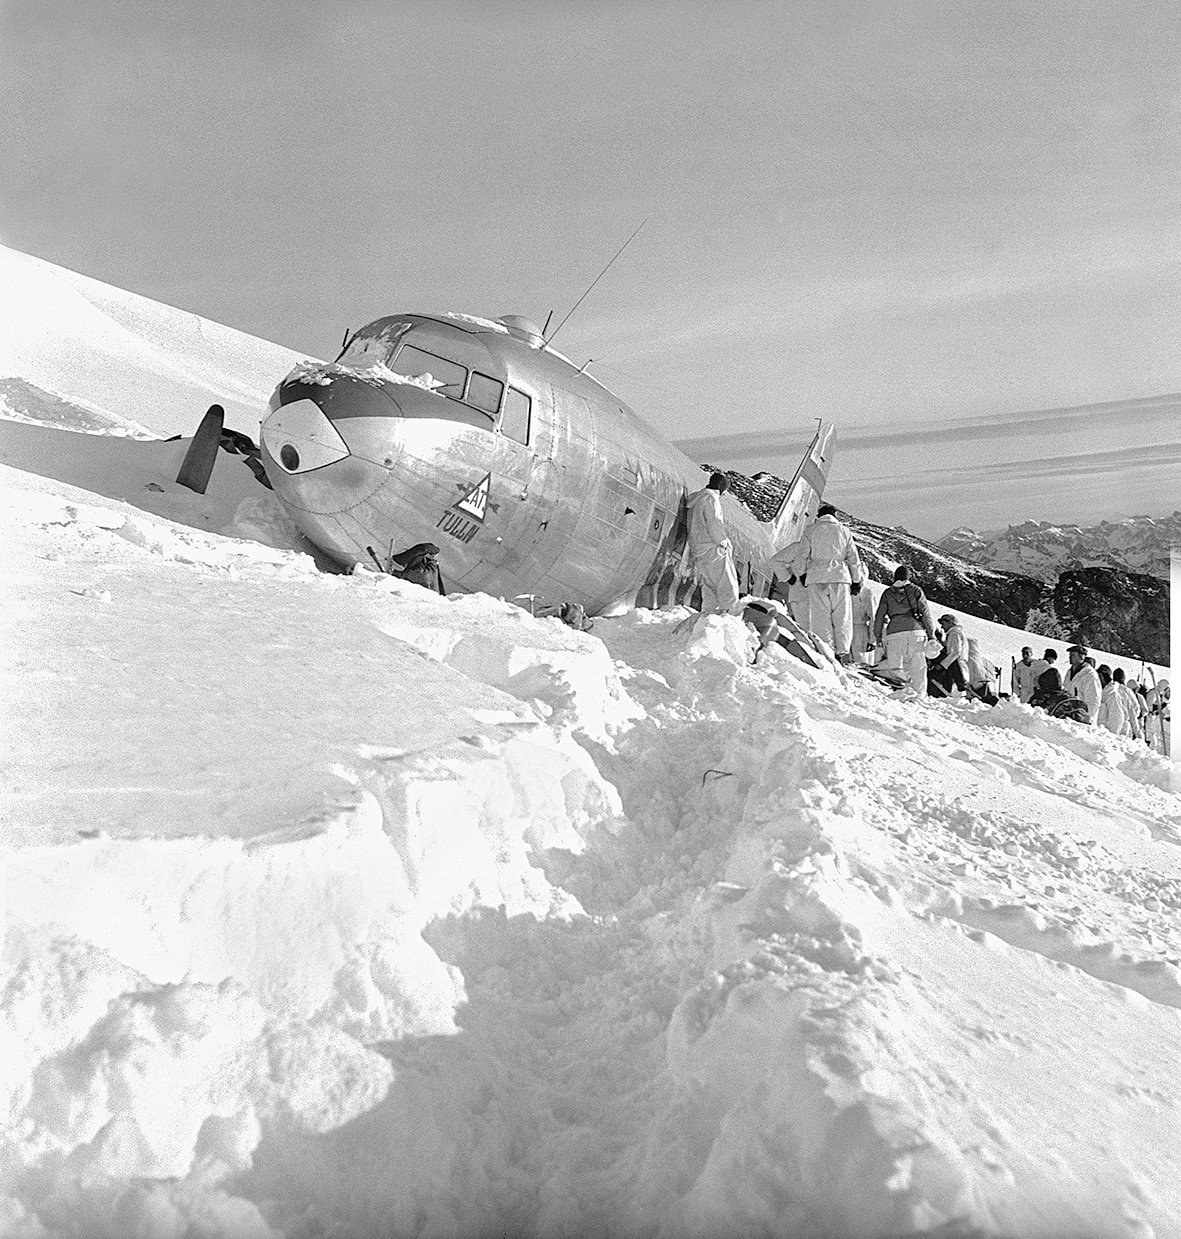 The 83 rescuers made snow caves under the plane wreck and camped out in -15 Celsius while the American passengers, including four wounded, spent their fifth night in the plane.